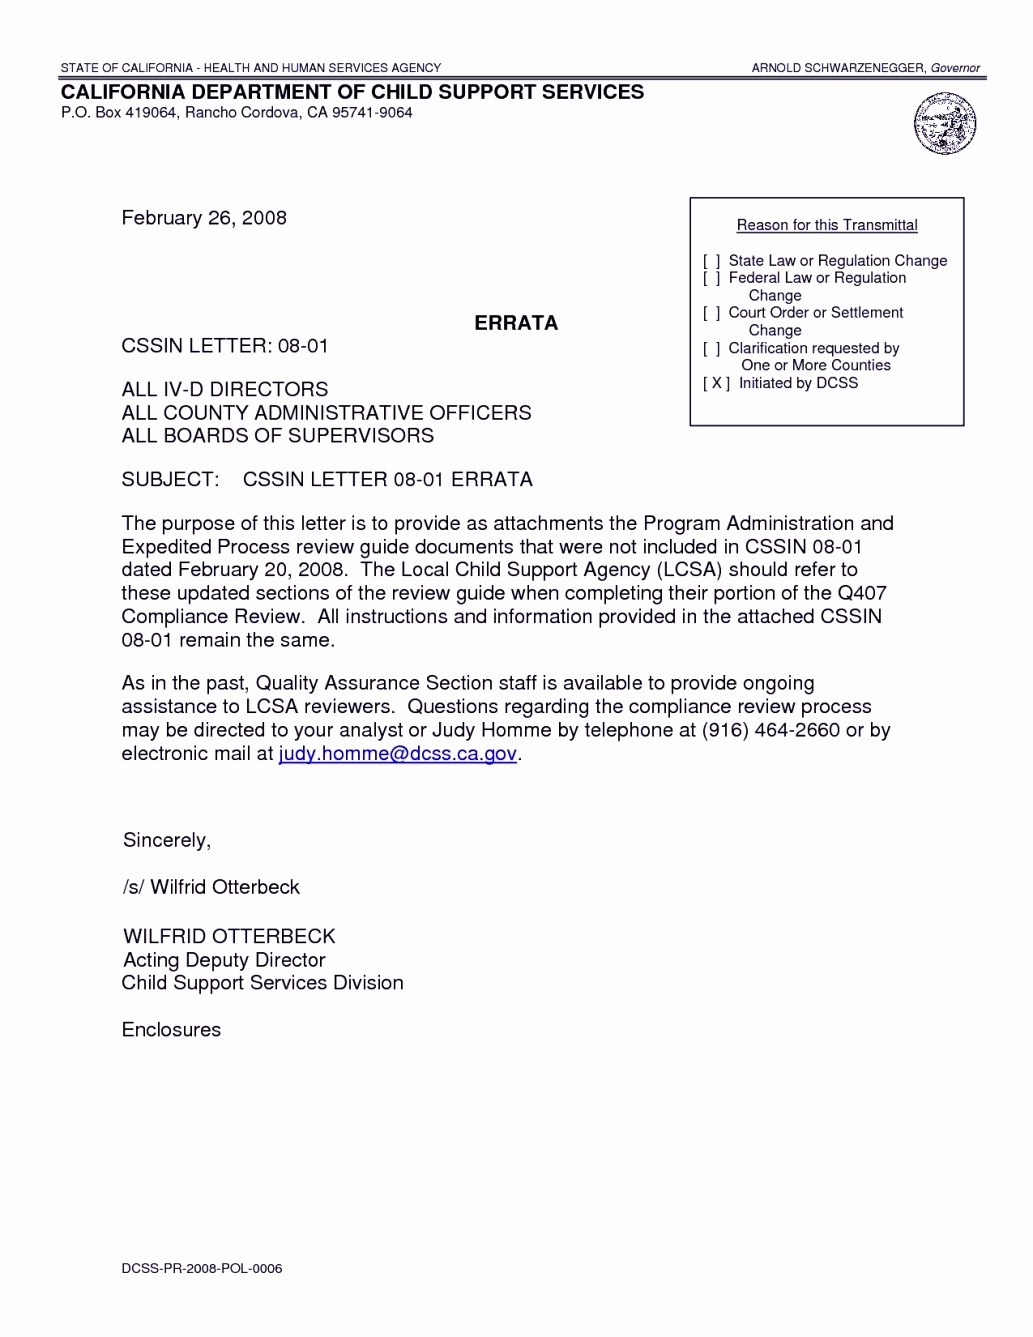 Child Support Letter Of Agreement Template - Voluntary Child Support Agreement Letter Elegant Gallery Example